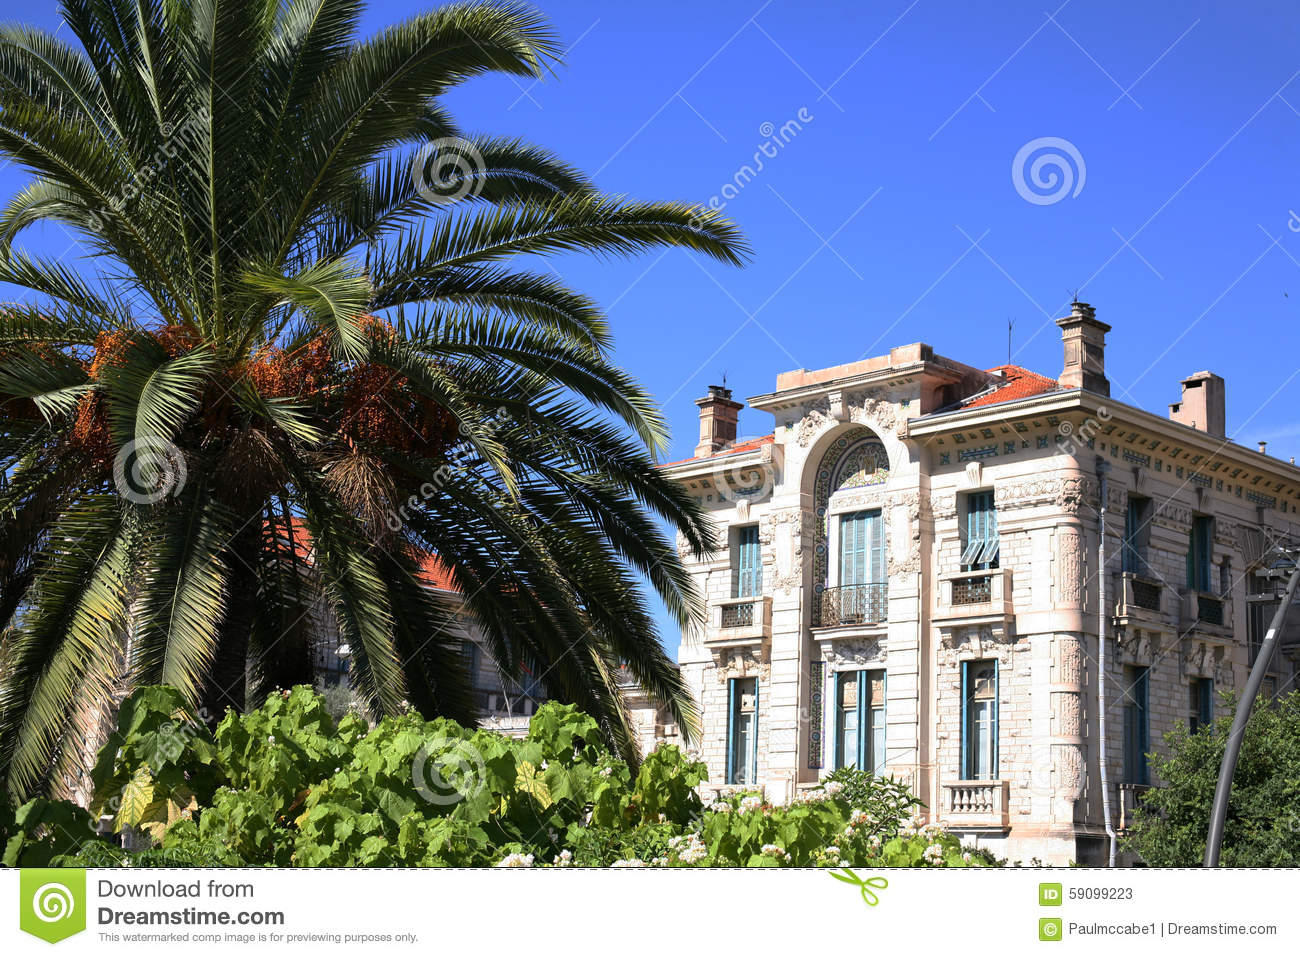 Building in nice france behind palm tree stock photo for Nice building images